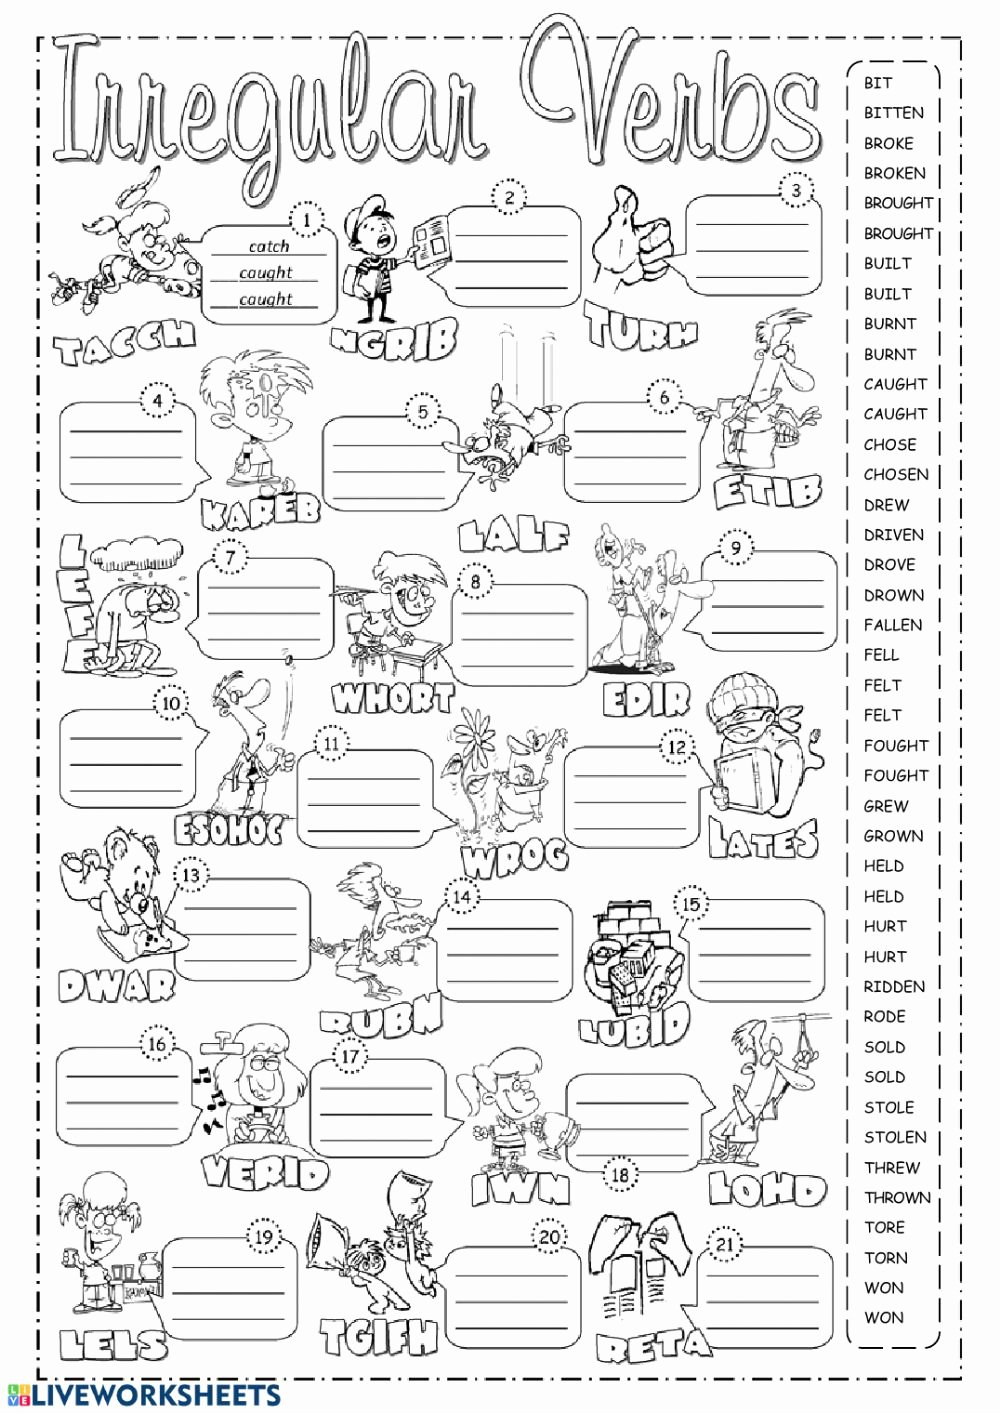 Irregular Verbs Worksheet 2nd Grade Inspirational Irregular Verbs Online Exercise and Pdf by Victor